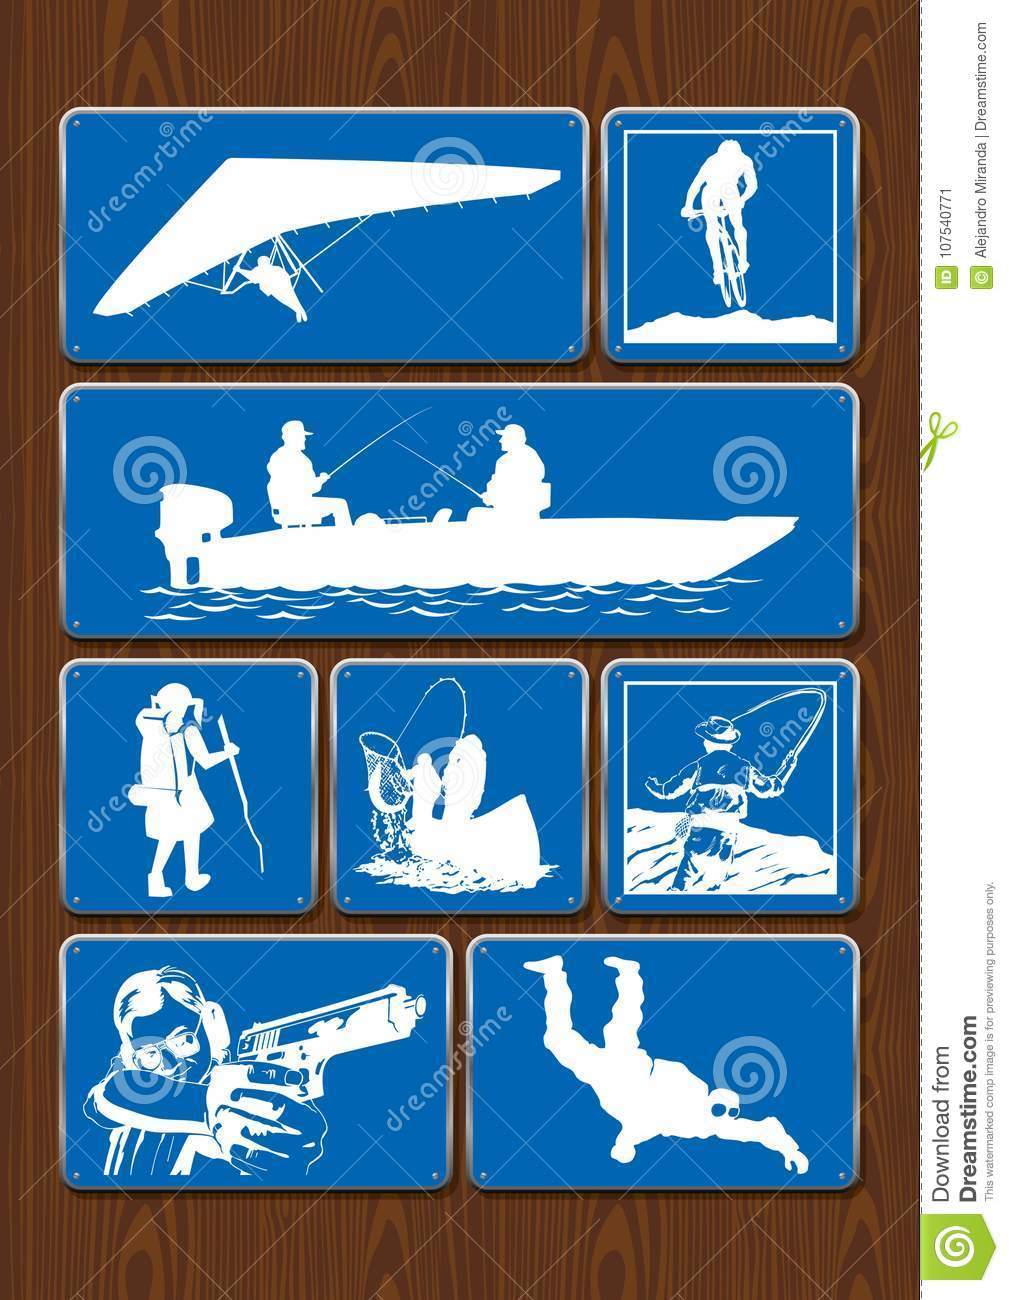 Set of icons of outdoor activities: binoculars, compass, hiking, climbing. Icons in blue color on wooden background